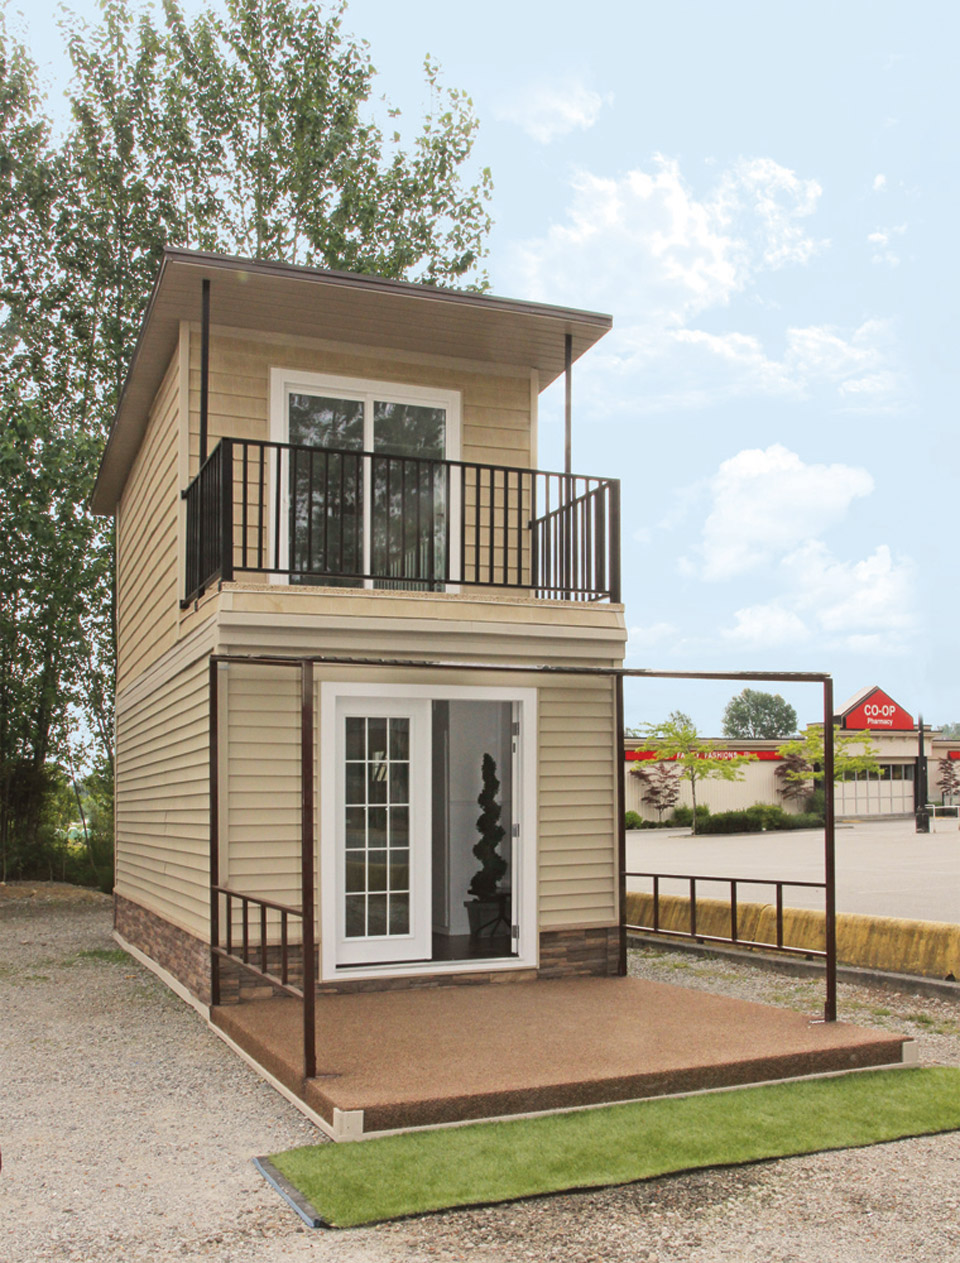 The eagle 1 a 350 sq ft 2 story steel framed micro home for Small house plans with photos